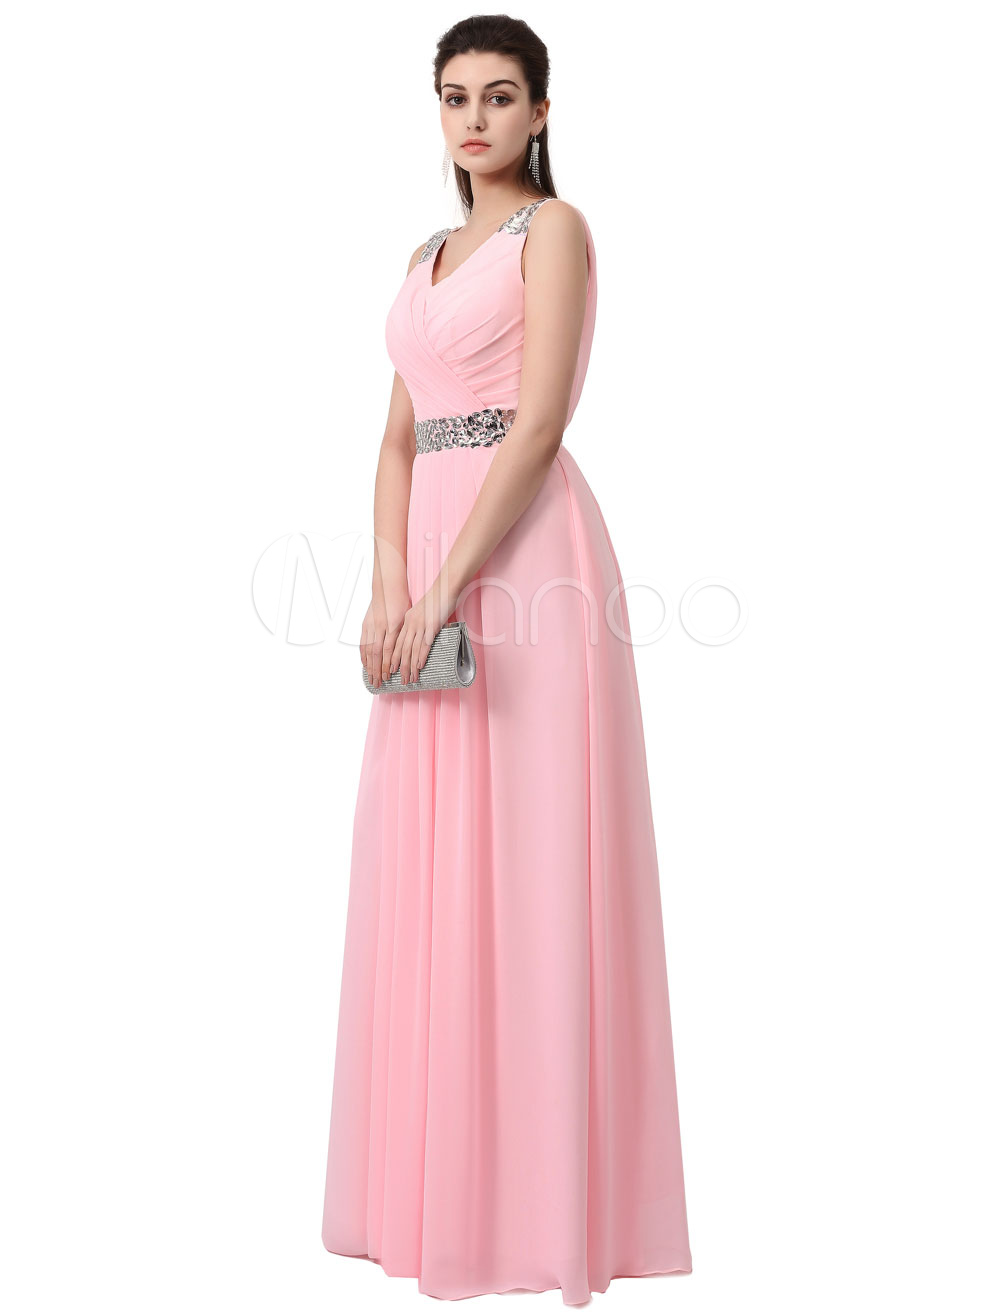 Buy Blush Prom Dress Long Bridesmaid Dress Soft Pink Chiffon Rhinestone Lace Back A Line Floor Length Party Dress for $152.99 in Milanoo store